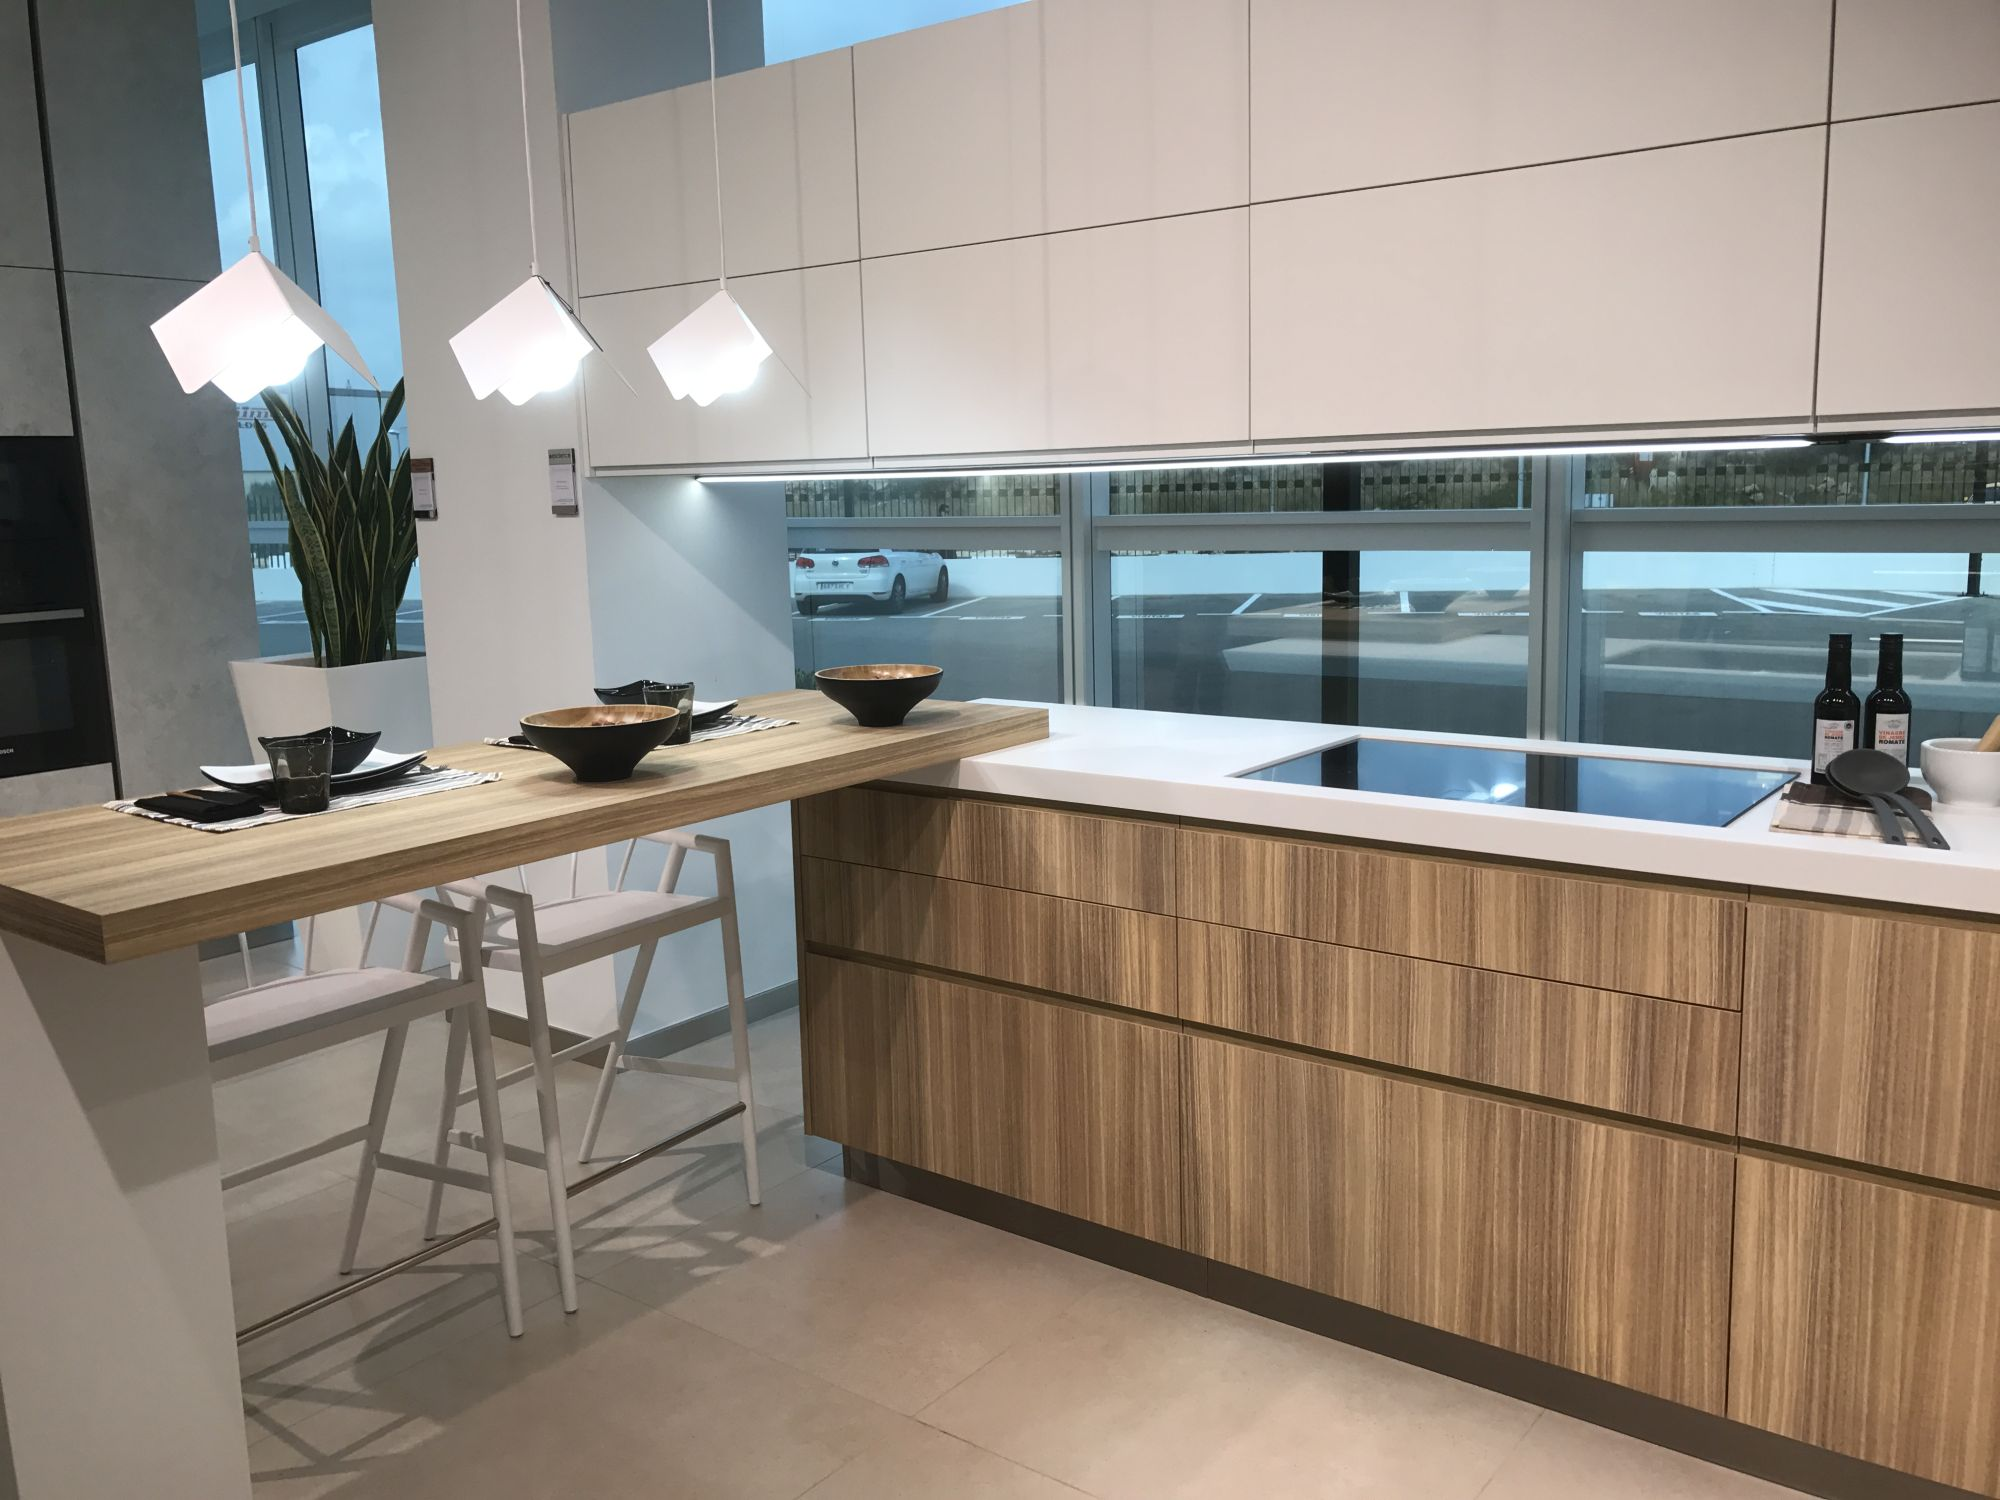 Wall Tile Designs For Kitchens